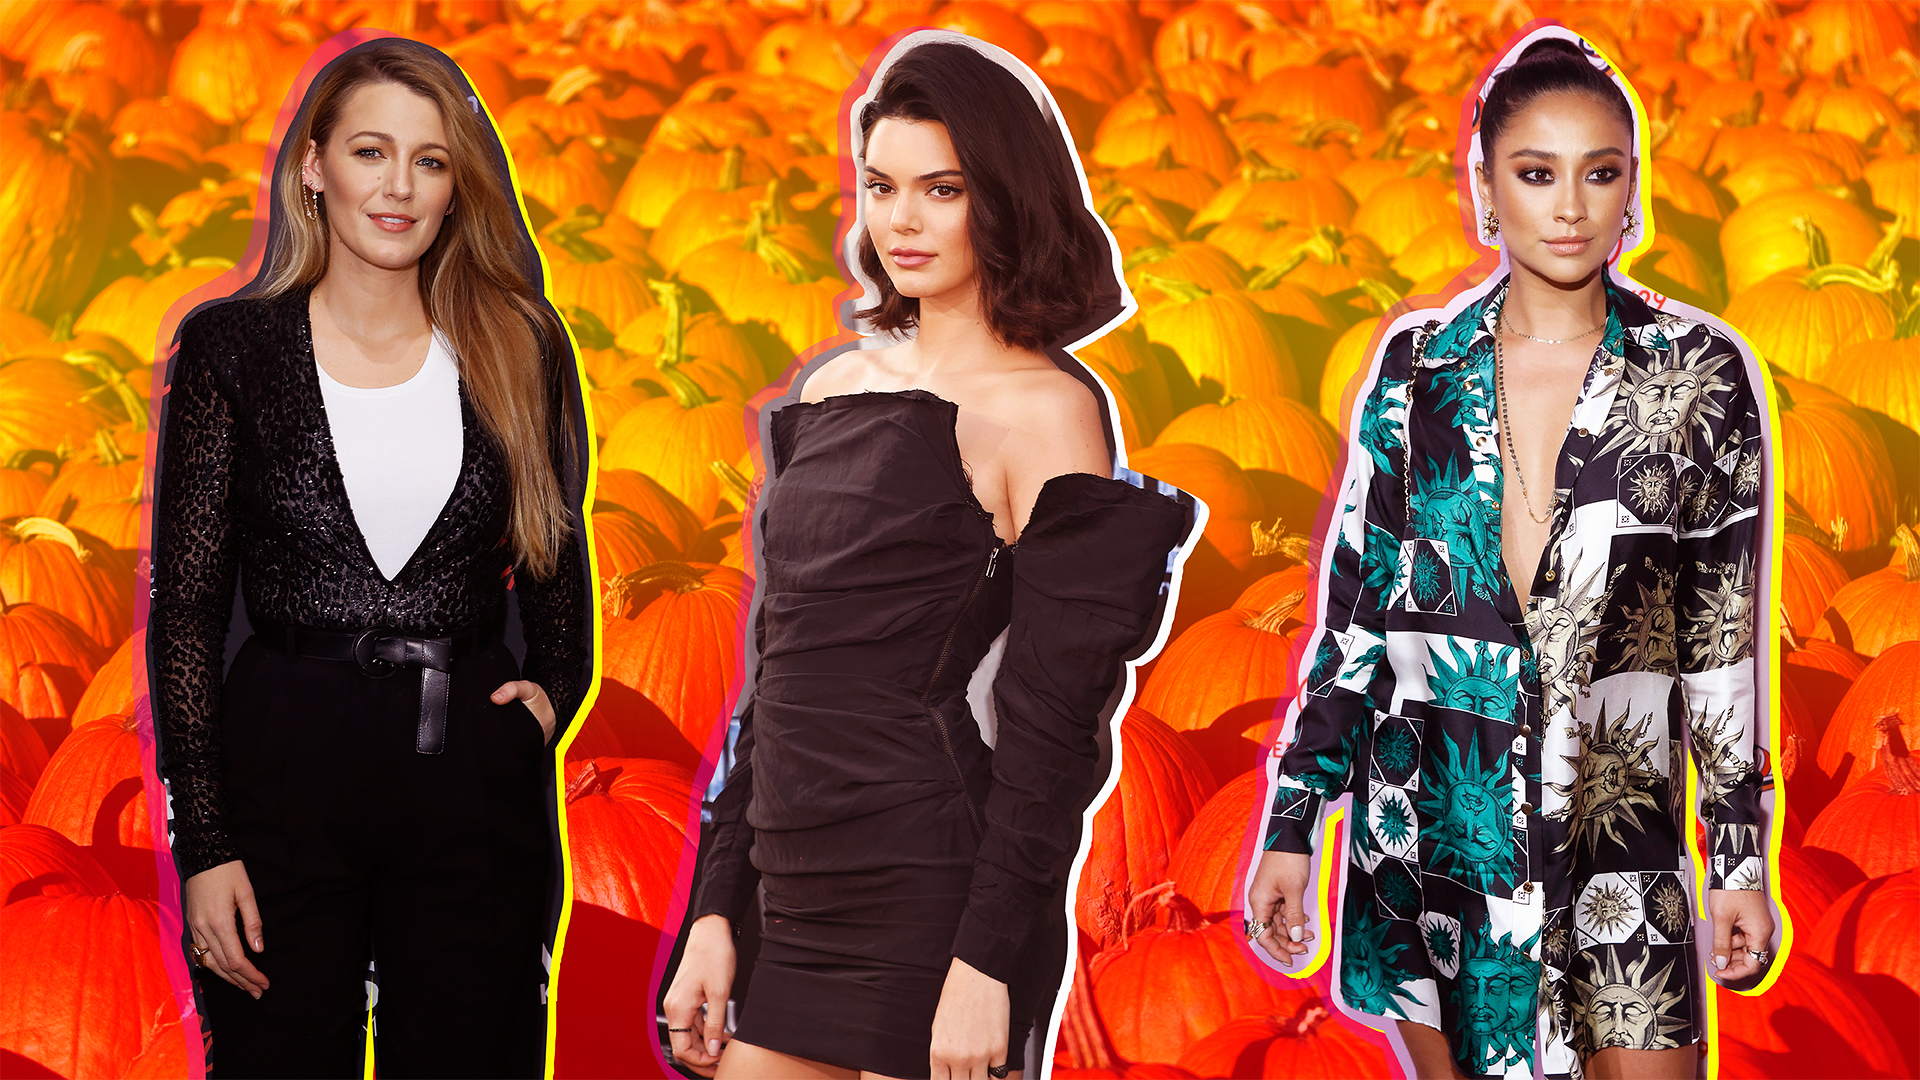 18 Adorable Photos of Celebrities Shopping for Pumpkins Because #Fall